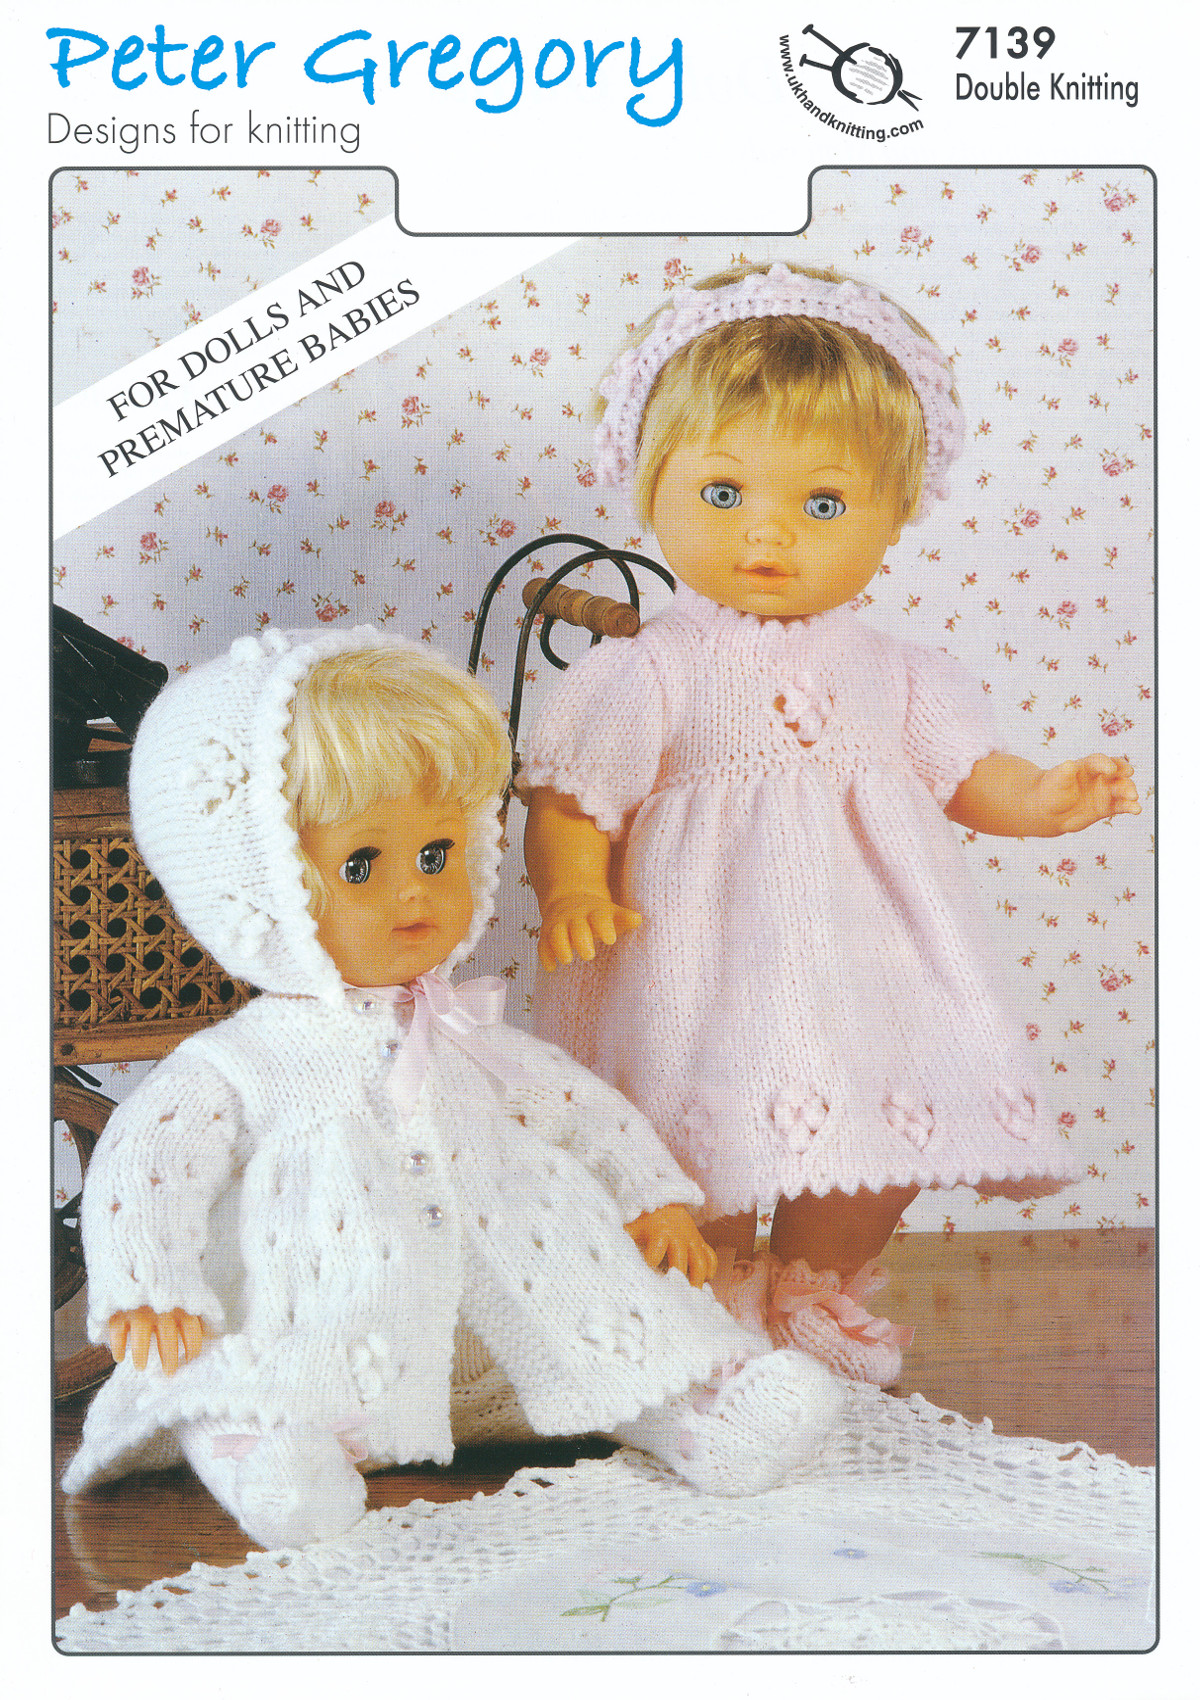 Baby dk double knitting pattern premature babies dolls outfits baby dk double knitting pattern premature babies dolls outfits jacket dress 7139 bankloansurffo Choice Image